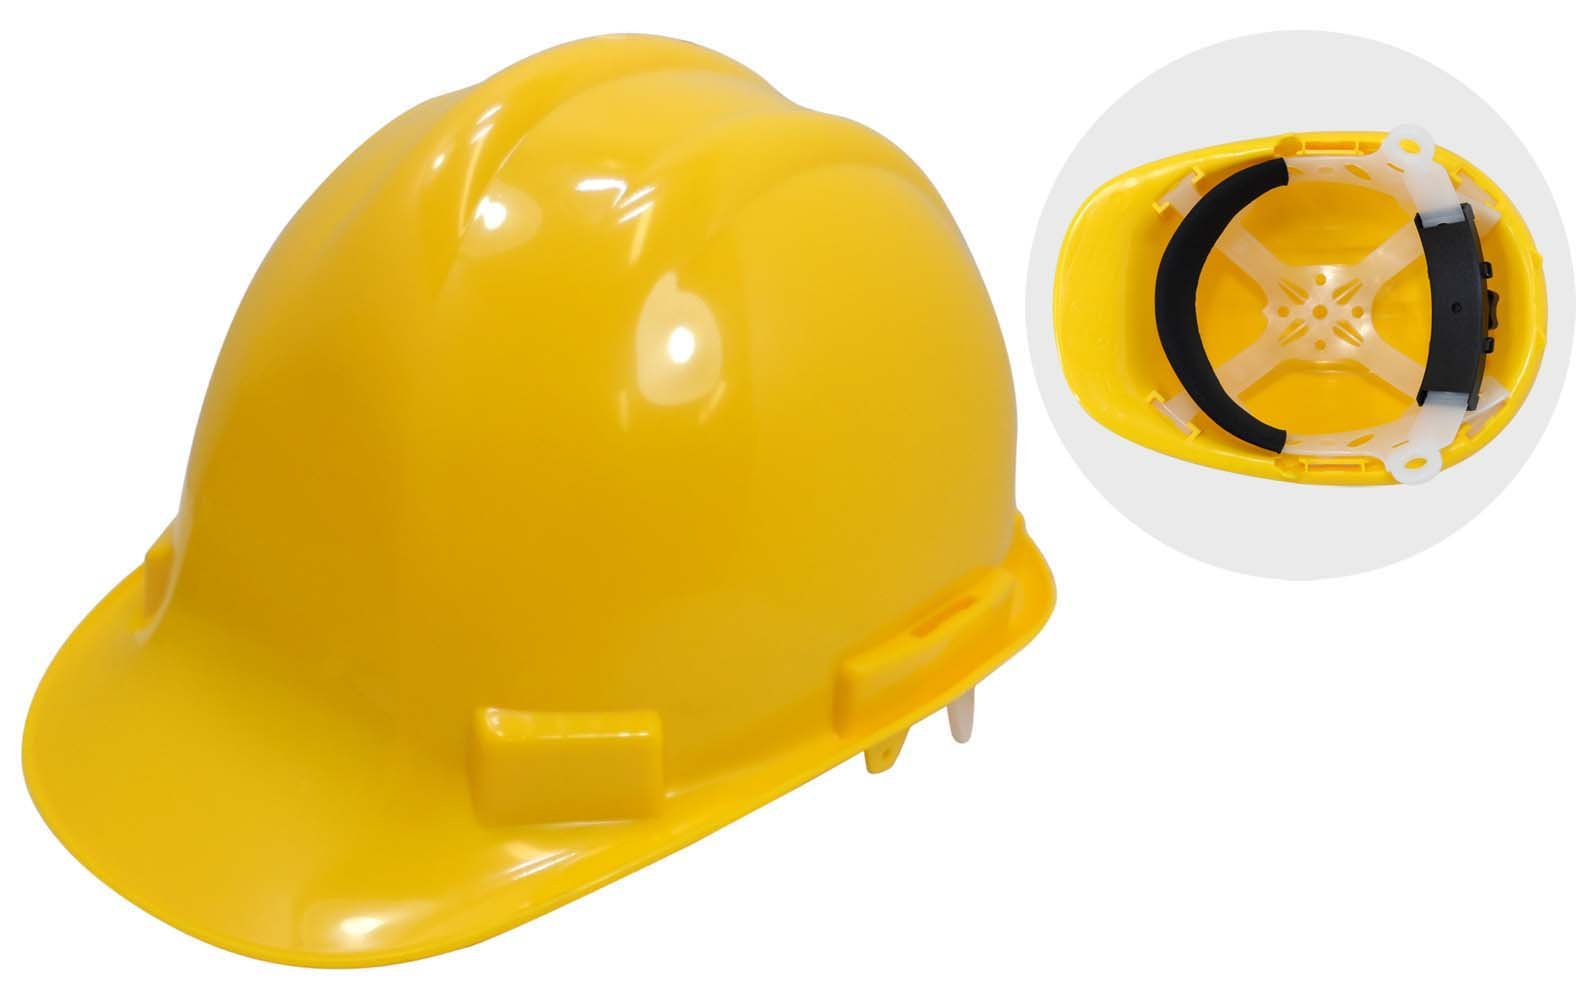 ToolUSA Osha Approved Adult Sized Yellow Safety Hard Hat with Built-In Adjustable Liner: SF-97704